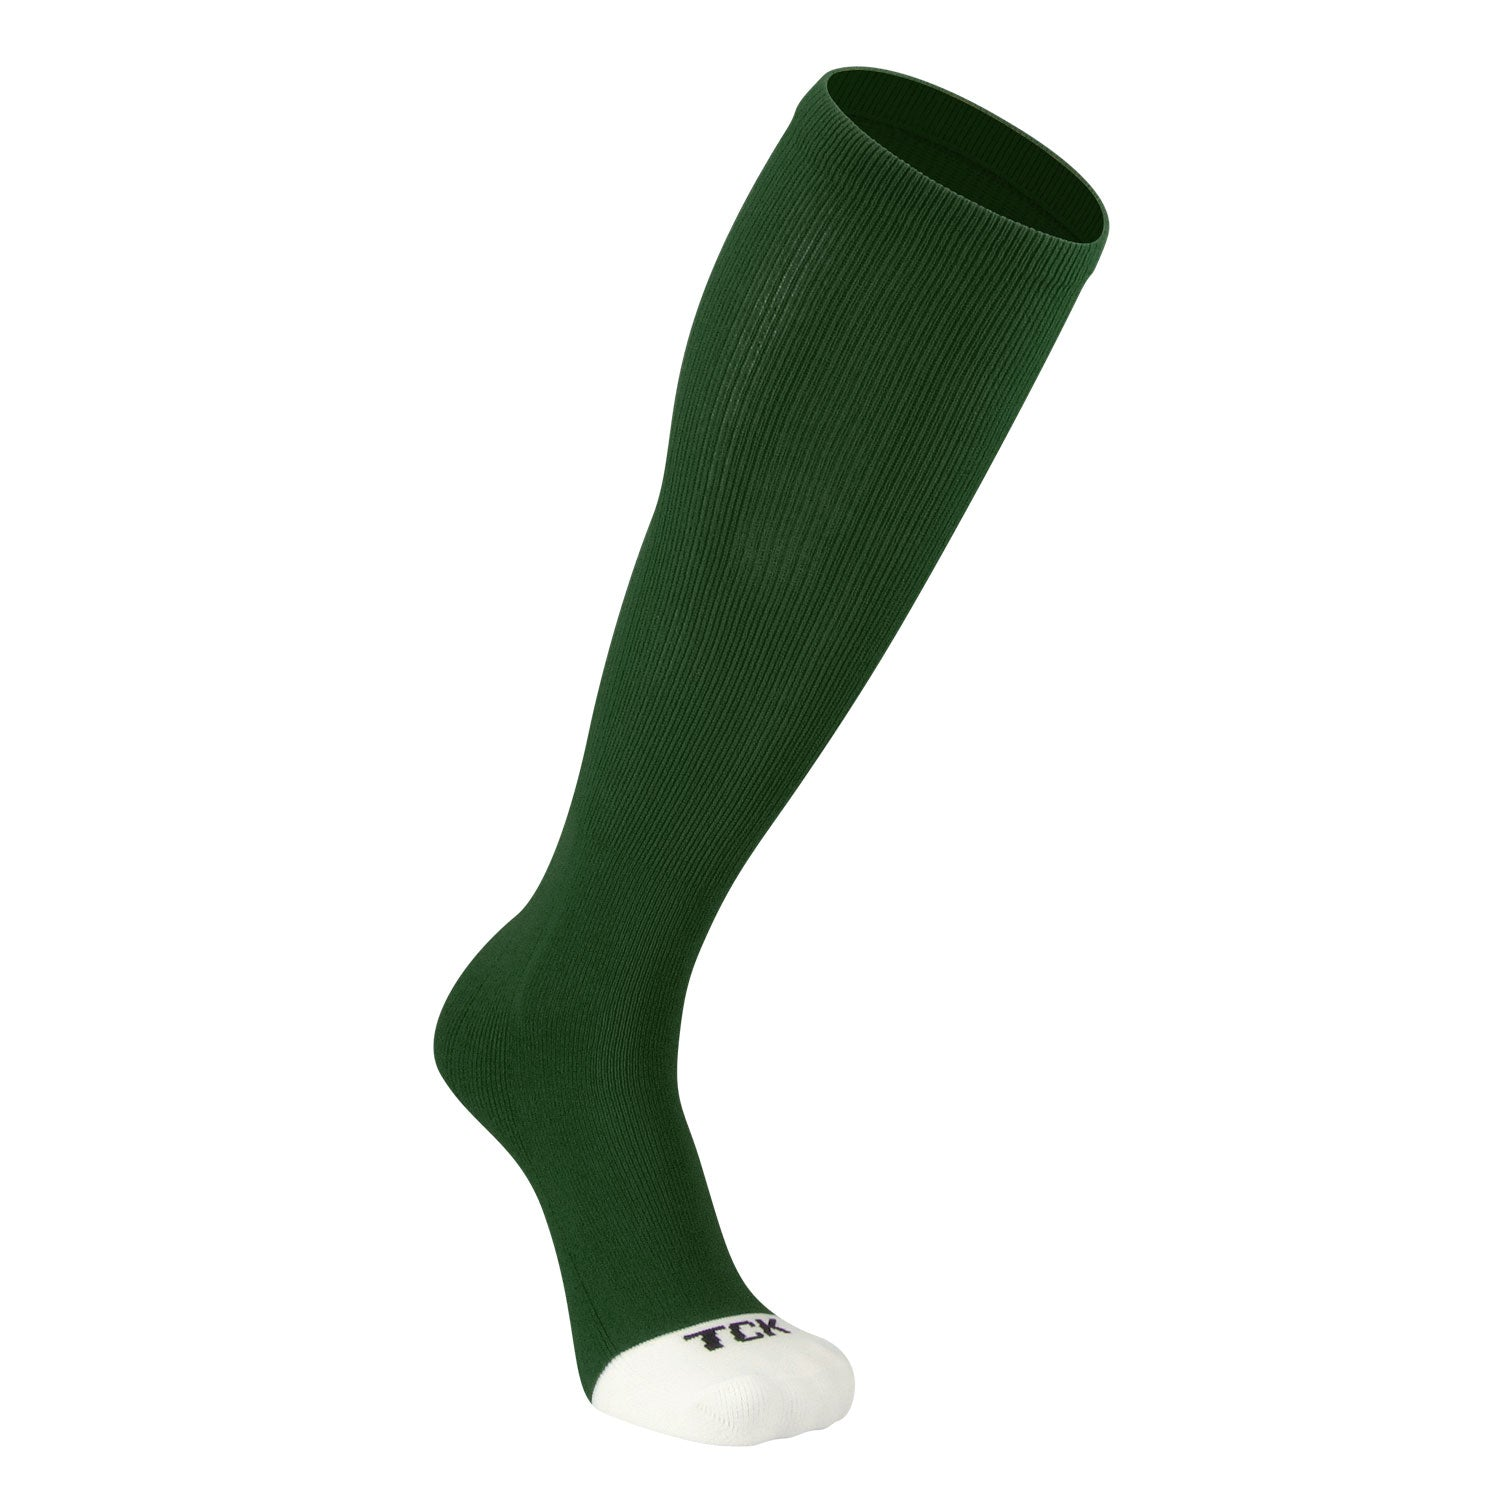 TCK PROSPORT PERFORMANCE TUBE SOCK (PTWT)